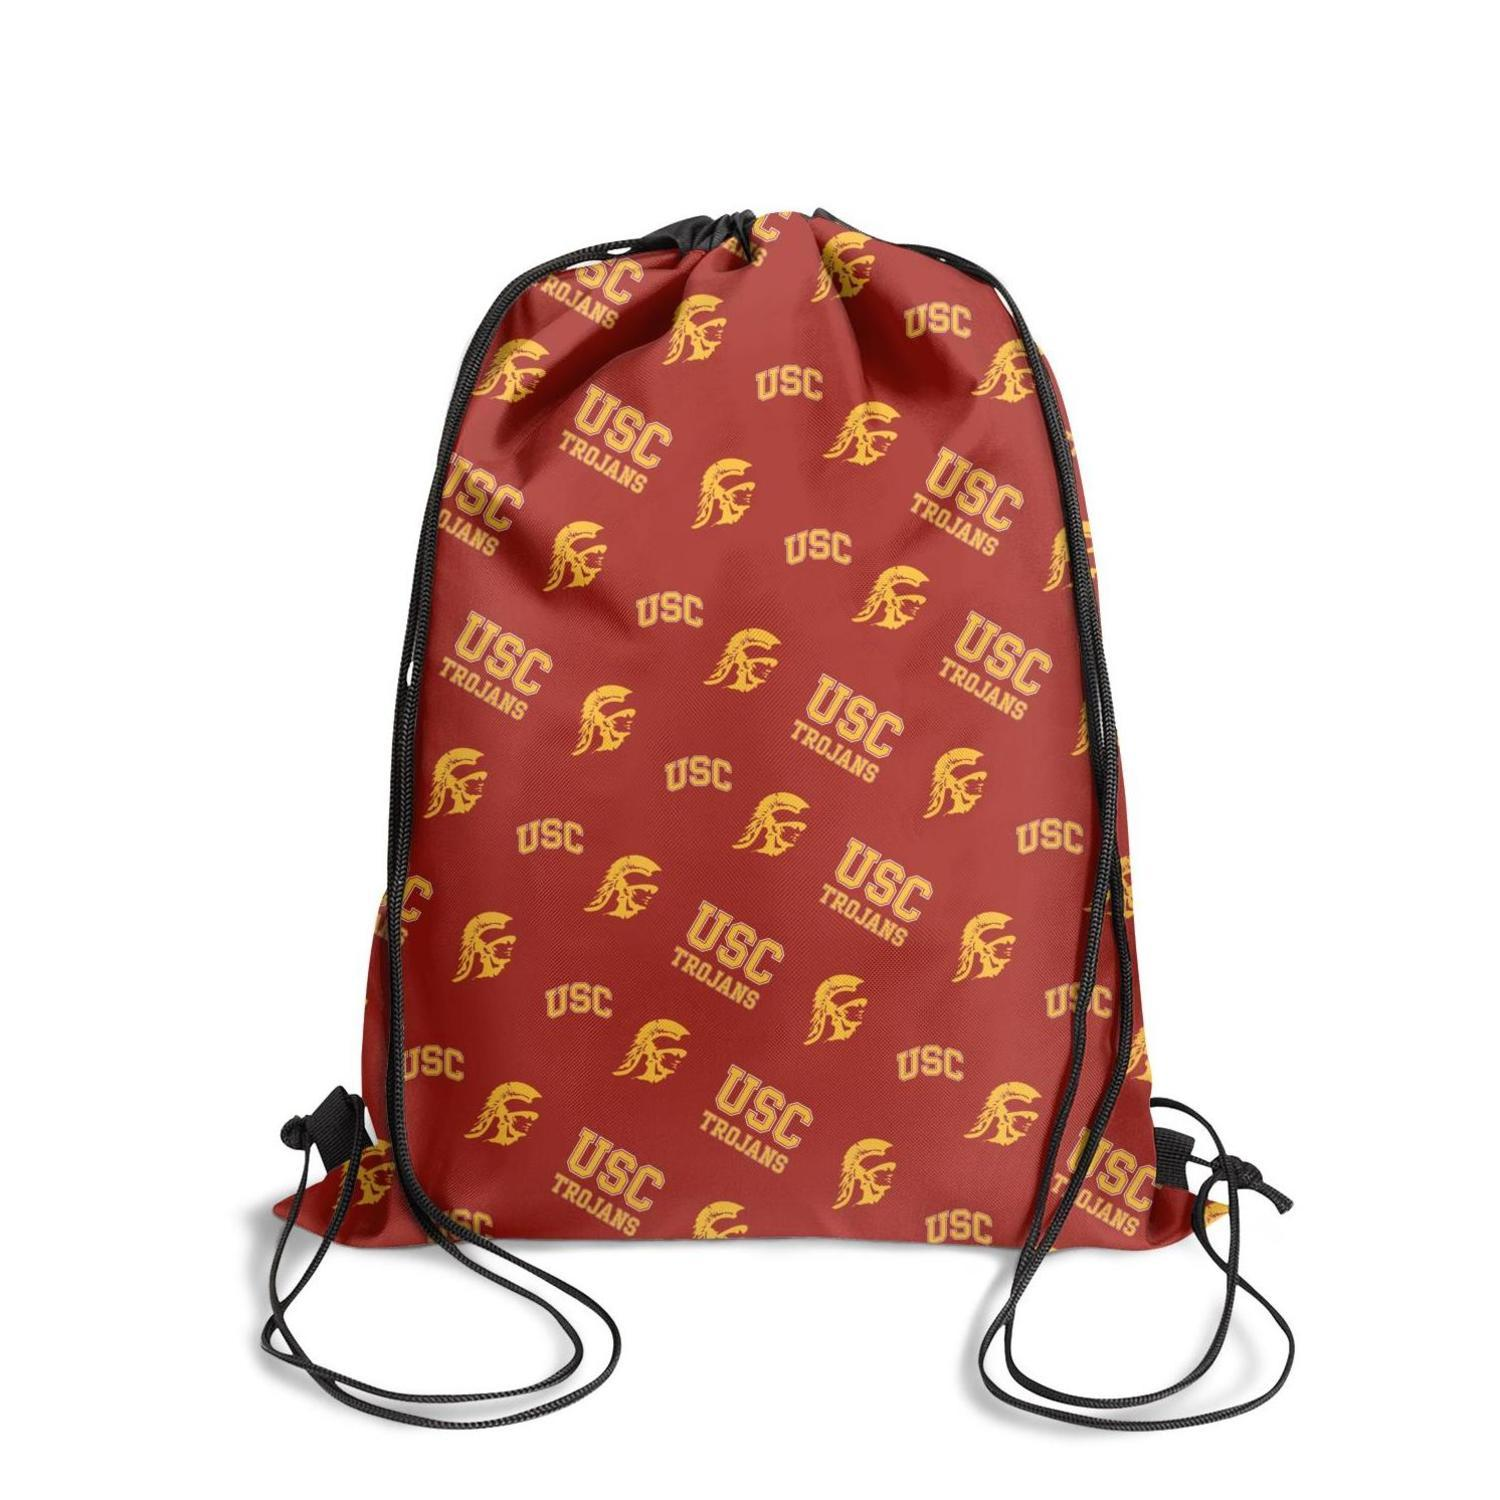 Usc trojans football basketball logoFashion sports belt backpack, design pop character durable and convenient string package, suitable fo